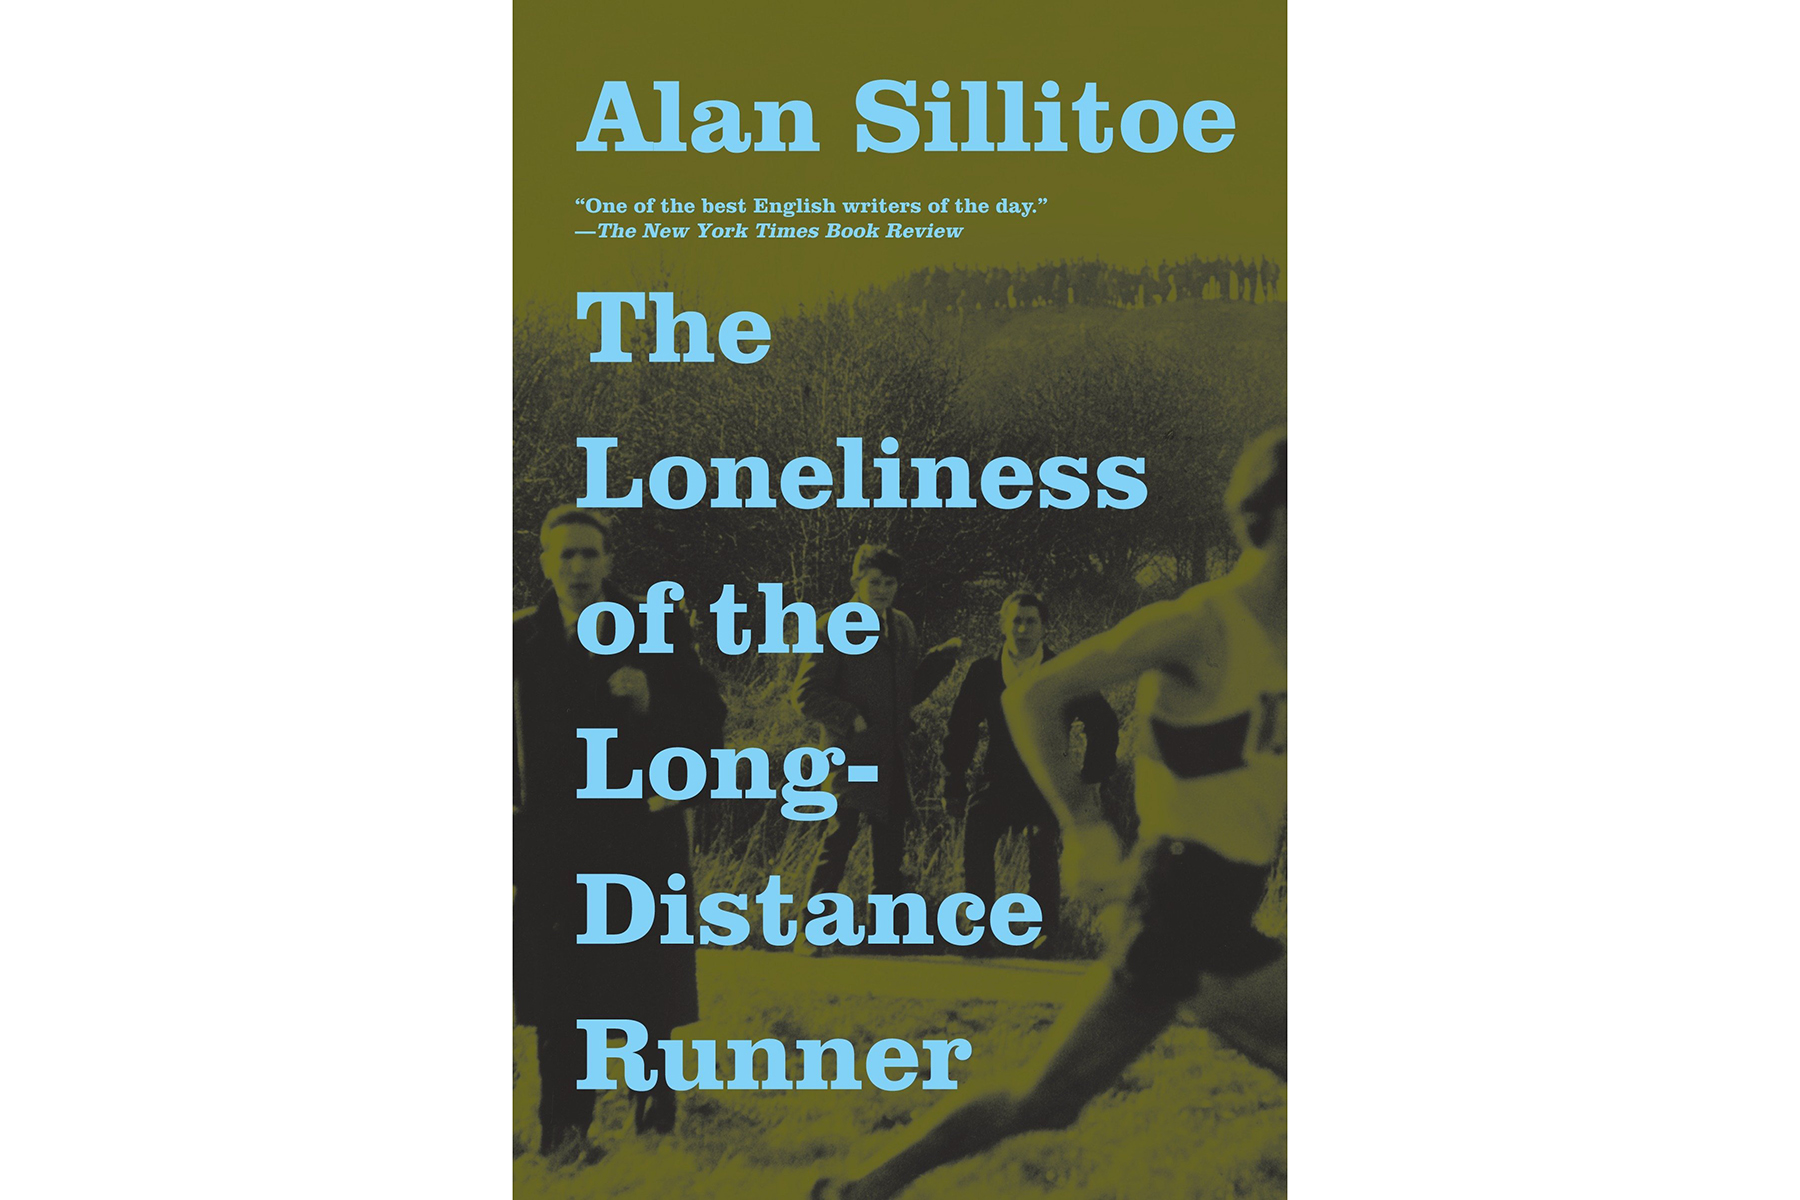 Running Books The Loneliness of the Long-Distance Runner, by Alan Sillitoe